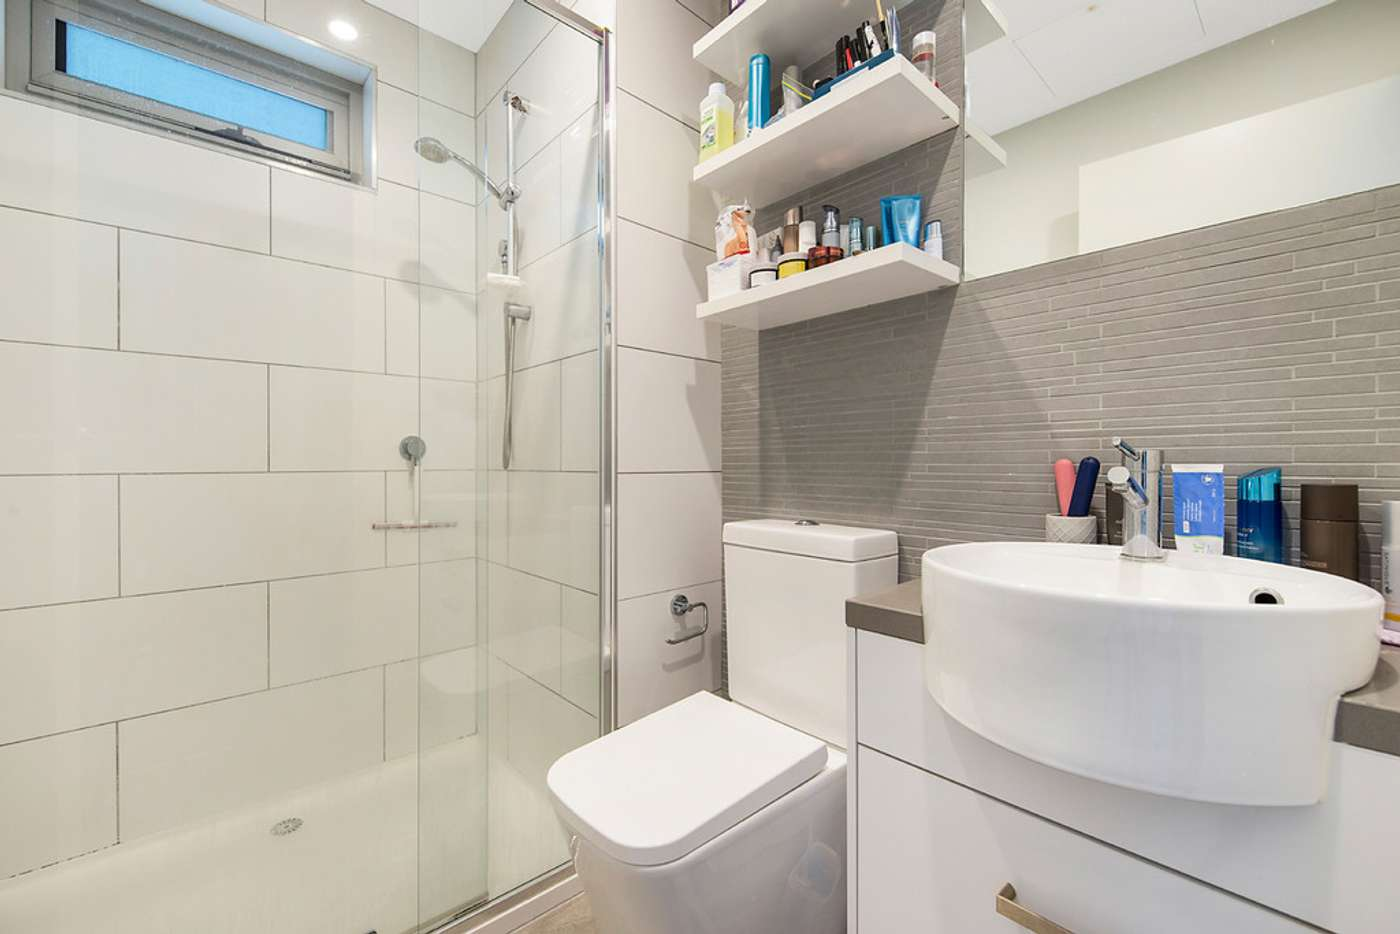 Fifth view of Homely apartment listing, 407/761 Station Street, Box Hill North VIC 3129